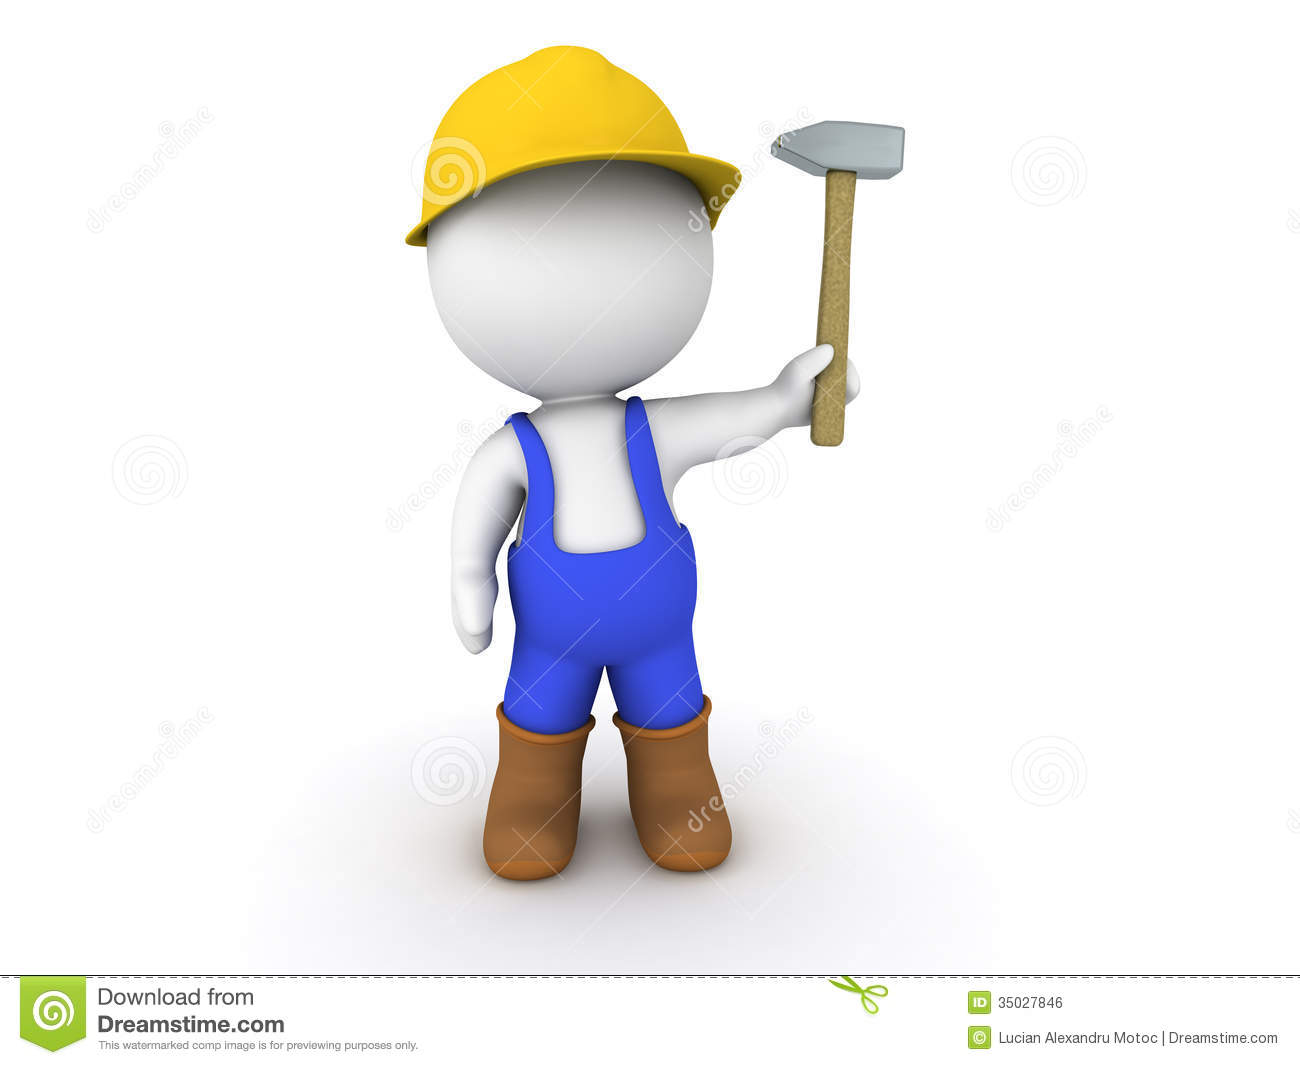 us map states with Royalty Free Stock Image D Man Worker Hammer Guy Dressed As Holding Image35027846 on Kalimantan Utara likewise Royalty Free Stock Image D Man Worker Hammer Guy Dressed As Holding Image35027846 besides Norway together with Route 66 likewise 200437.